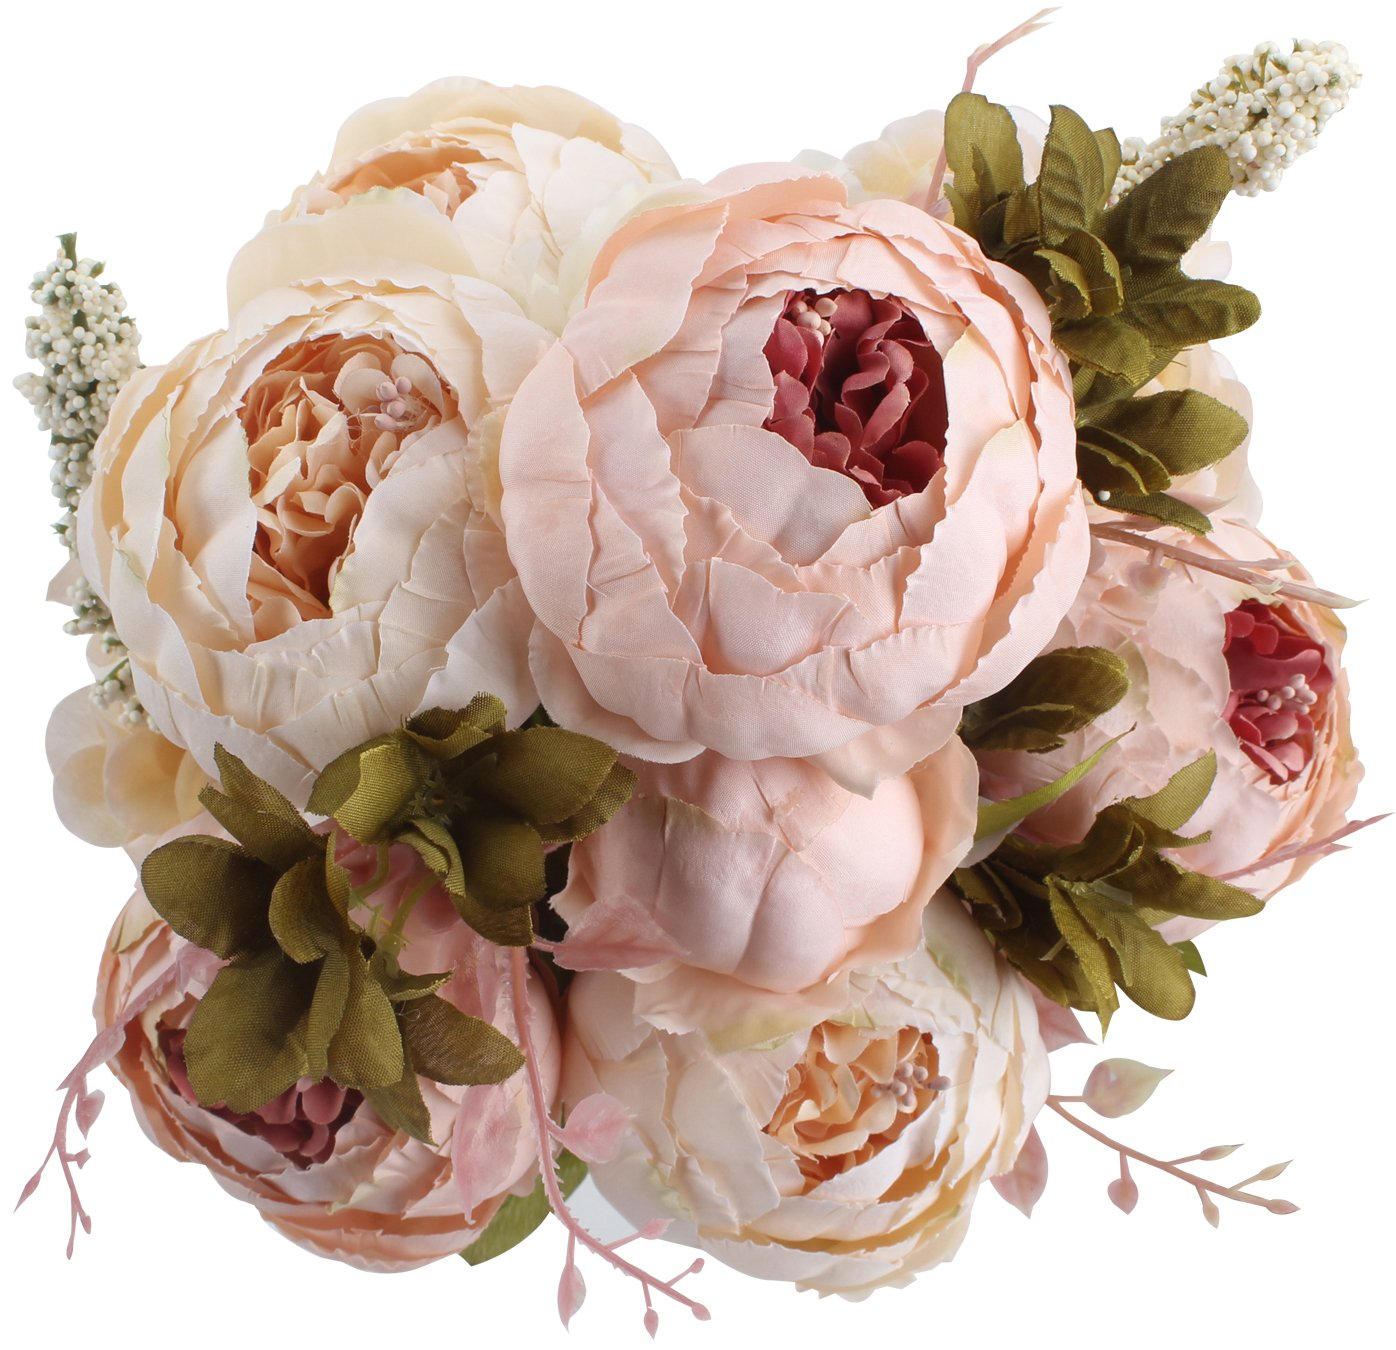 Amazon.com: Duovlo Fake Flowers Vintage Artificial Peony Silk ...